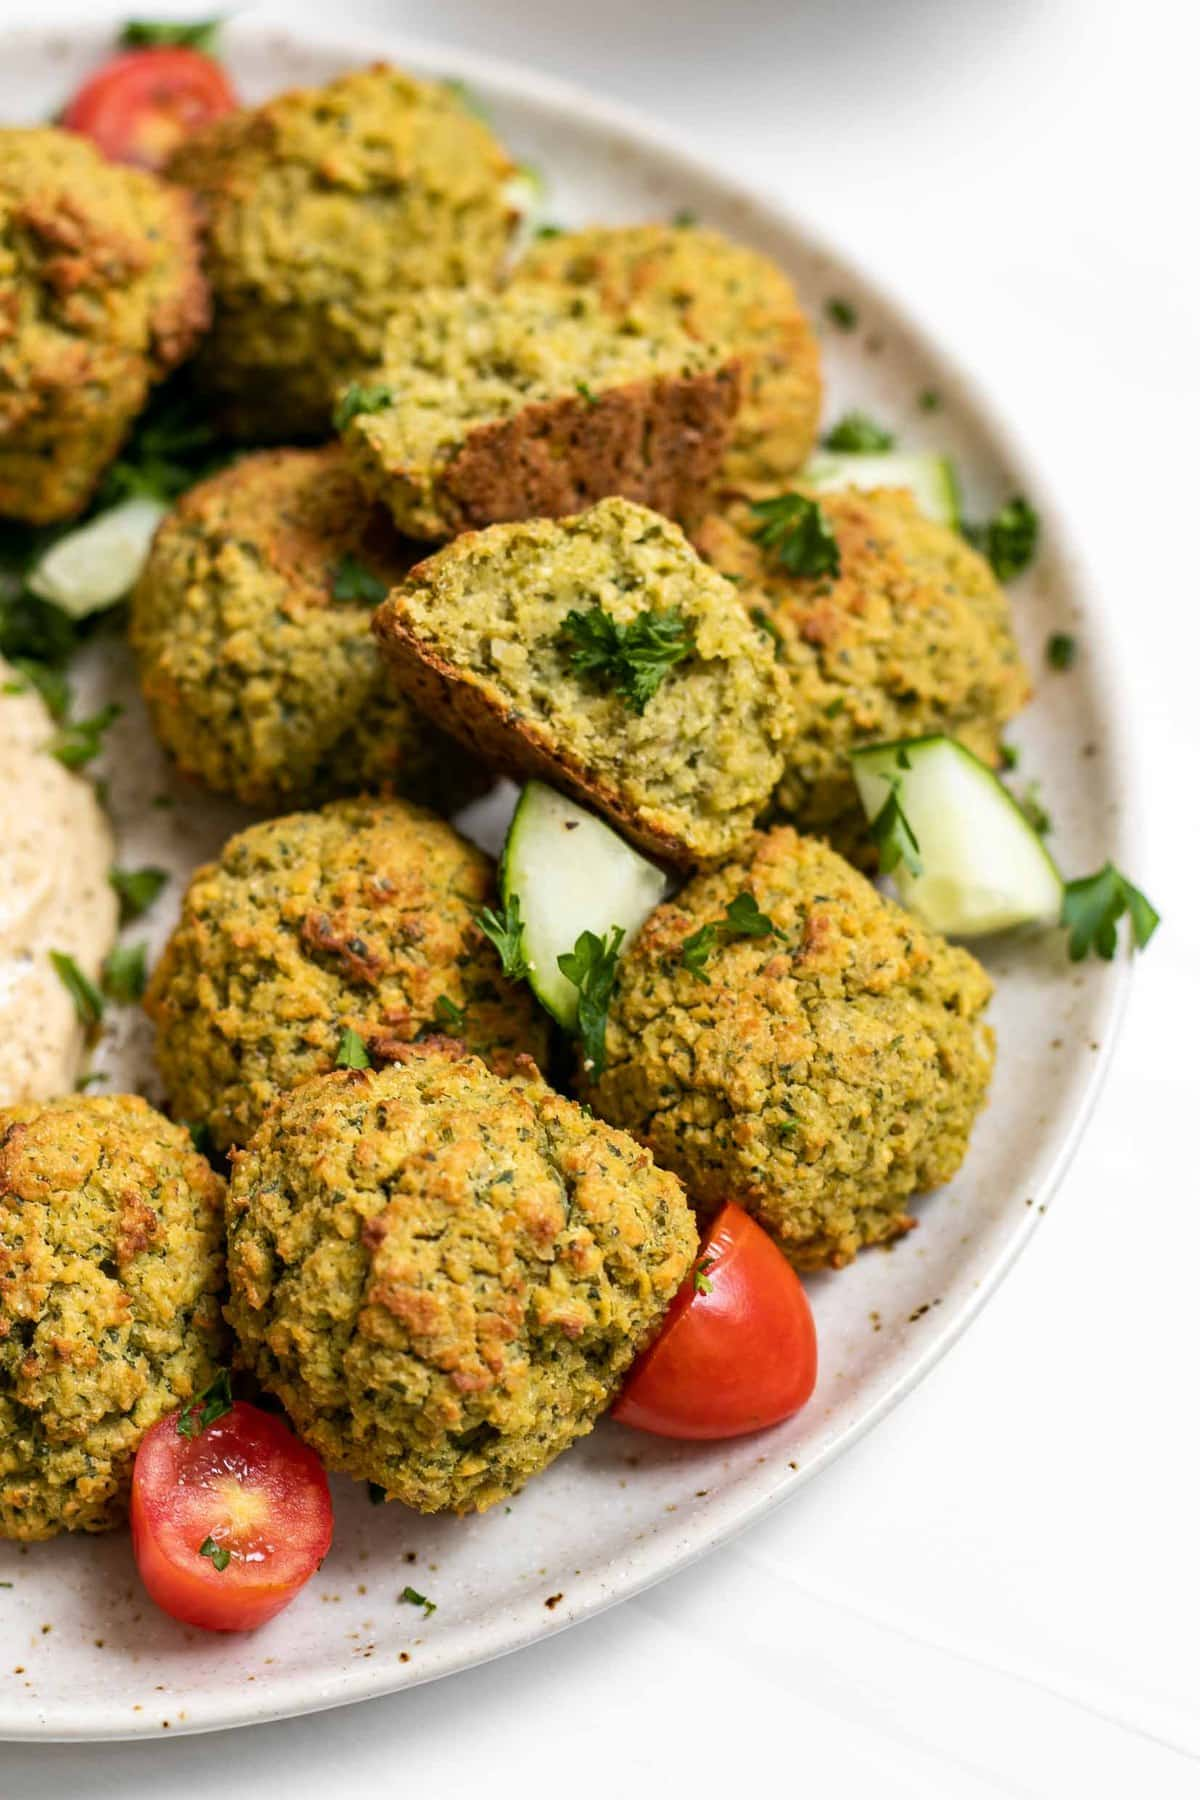 Vegan baked falafel recipe on a plate with parsley.